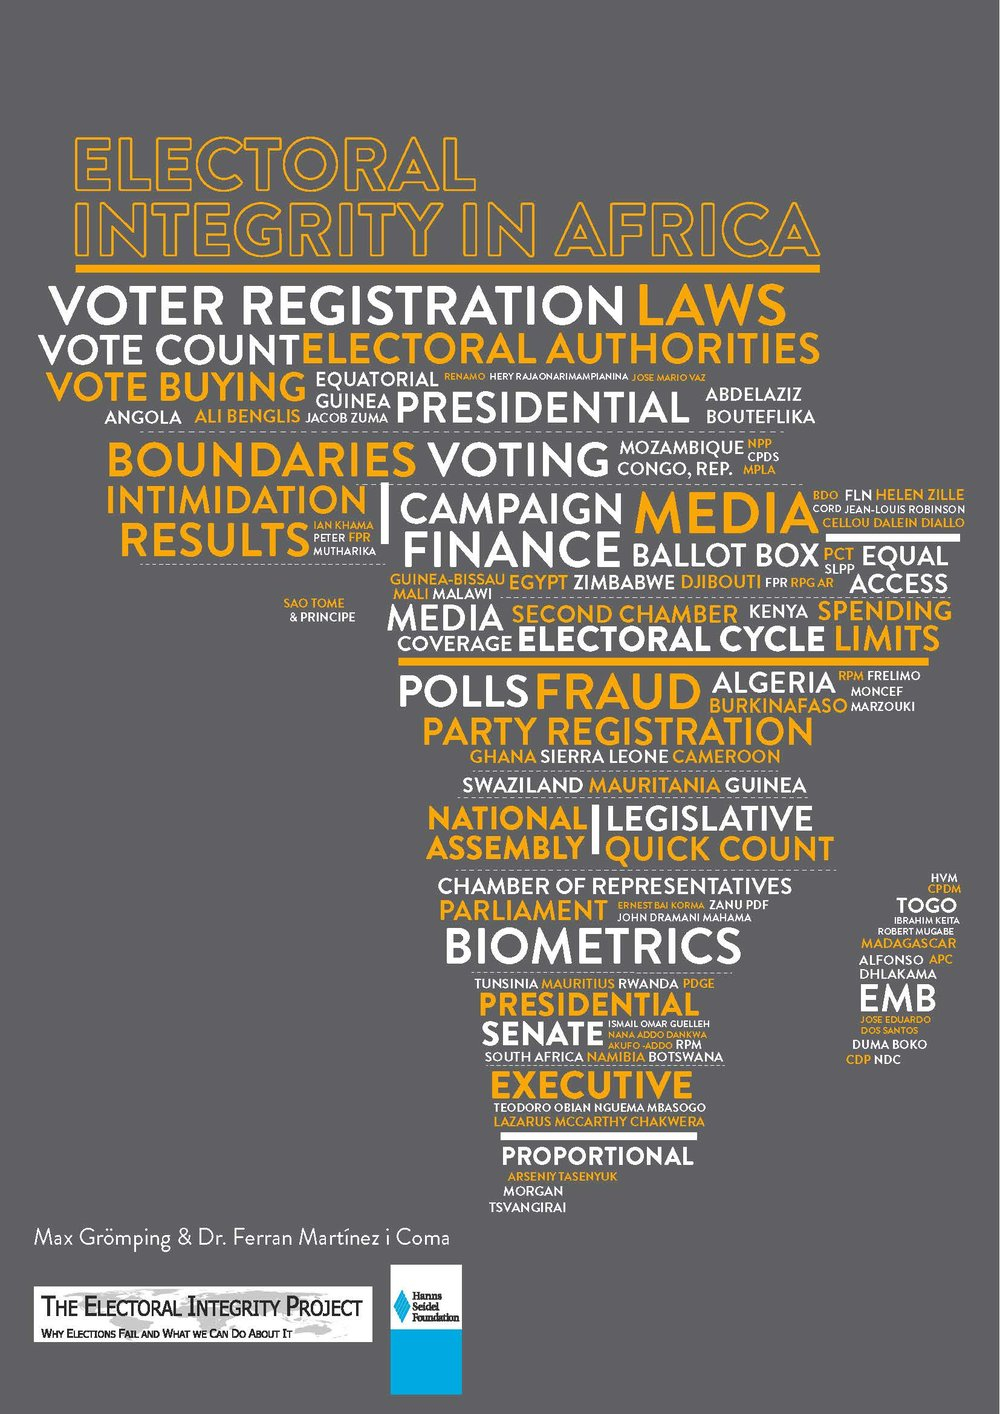 Electoral Integrity in Africa report.jpg